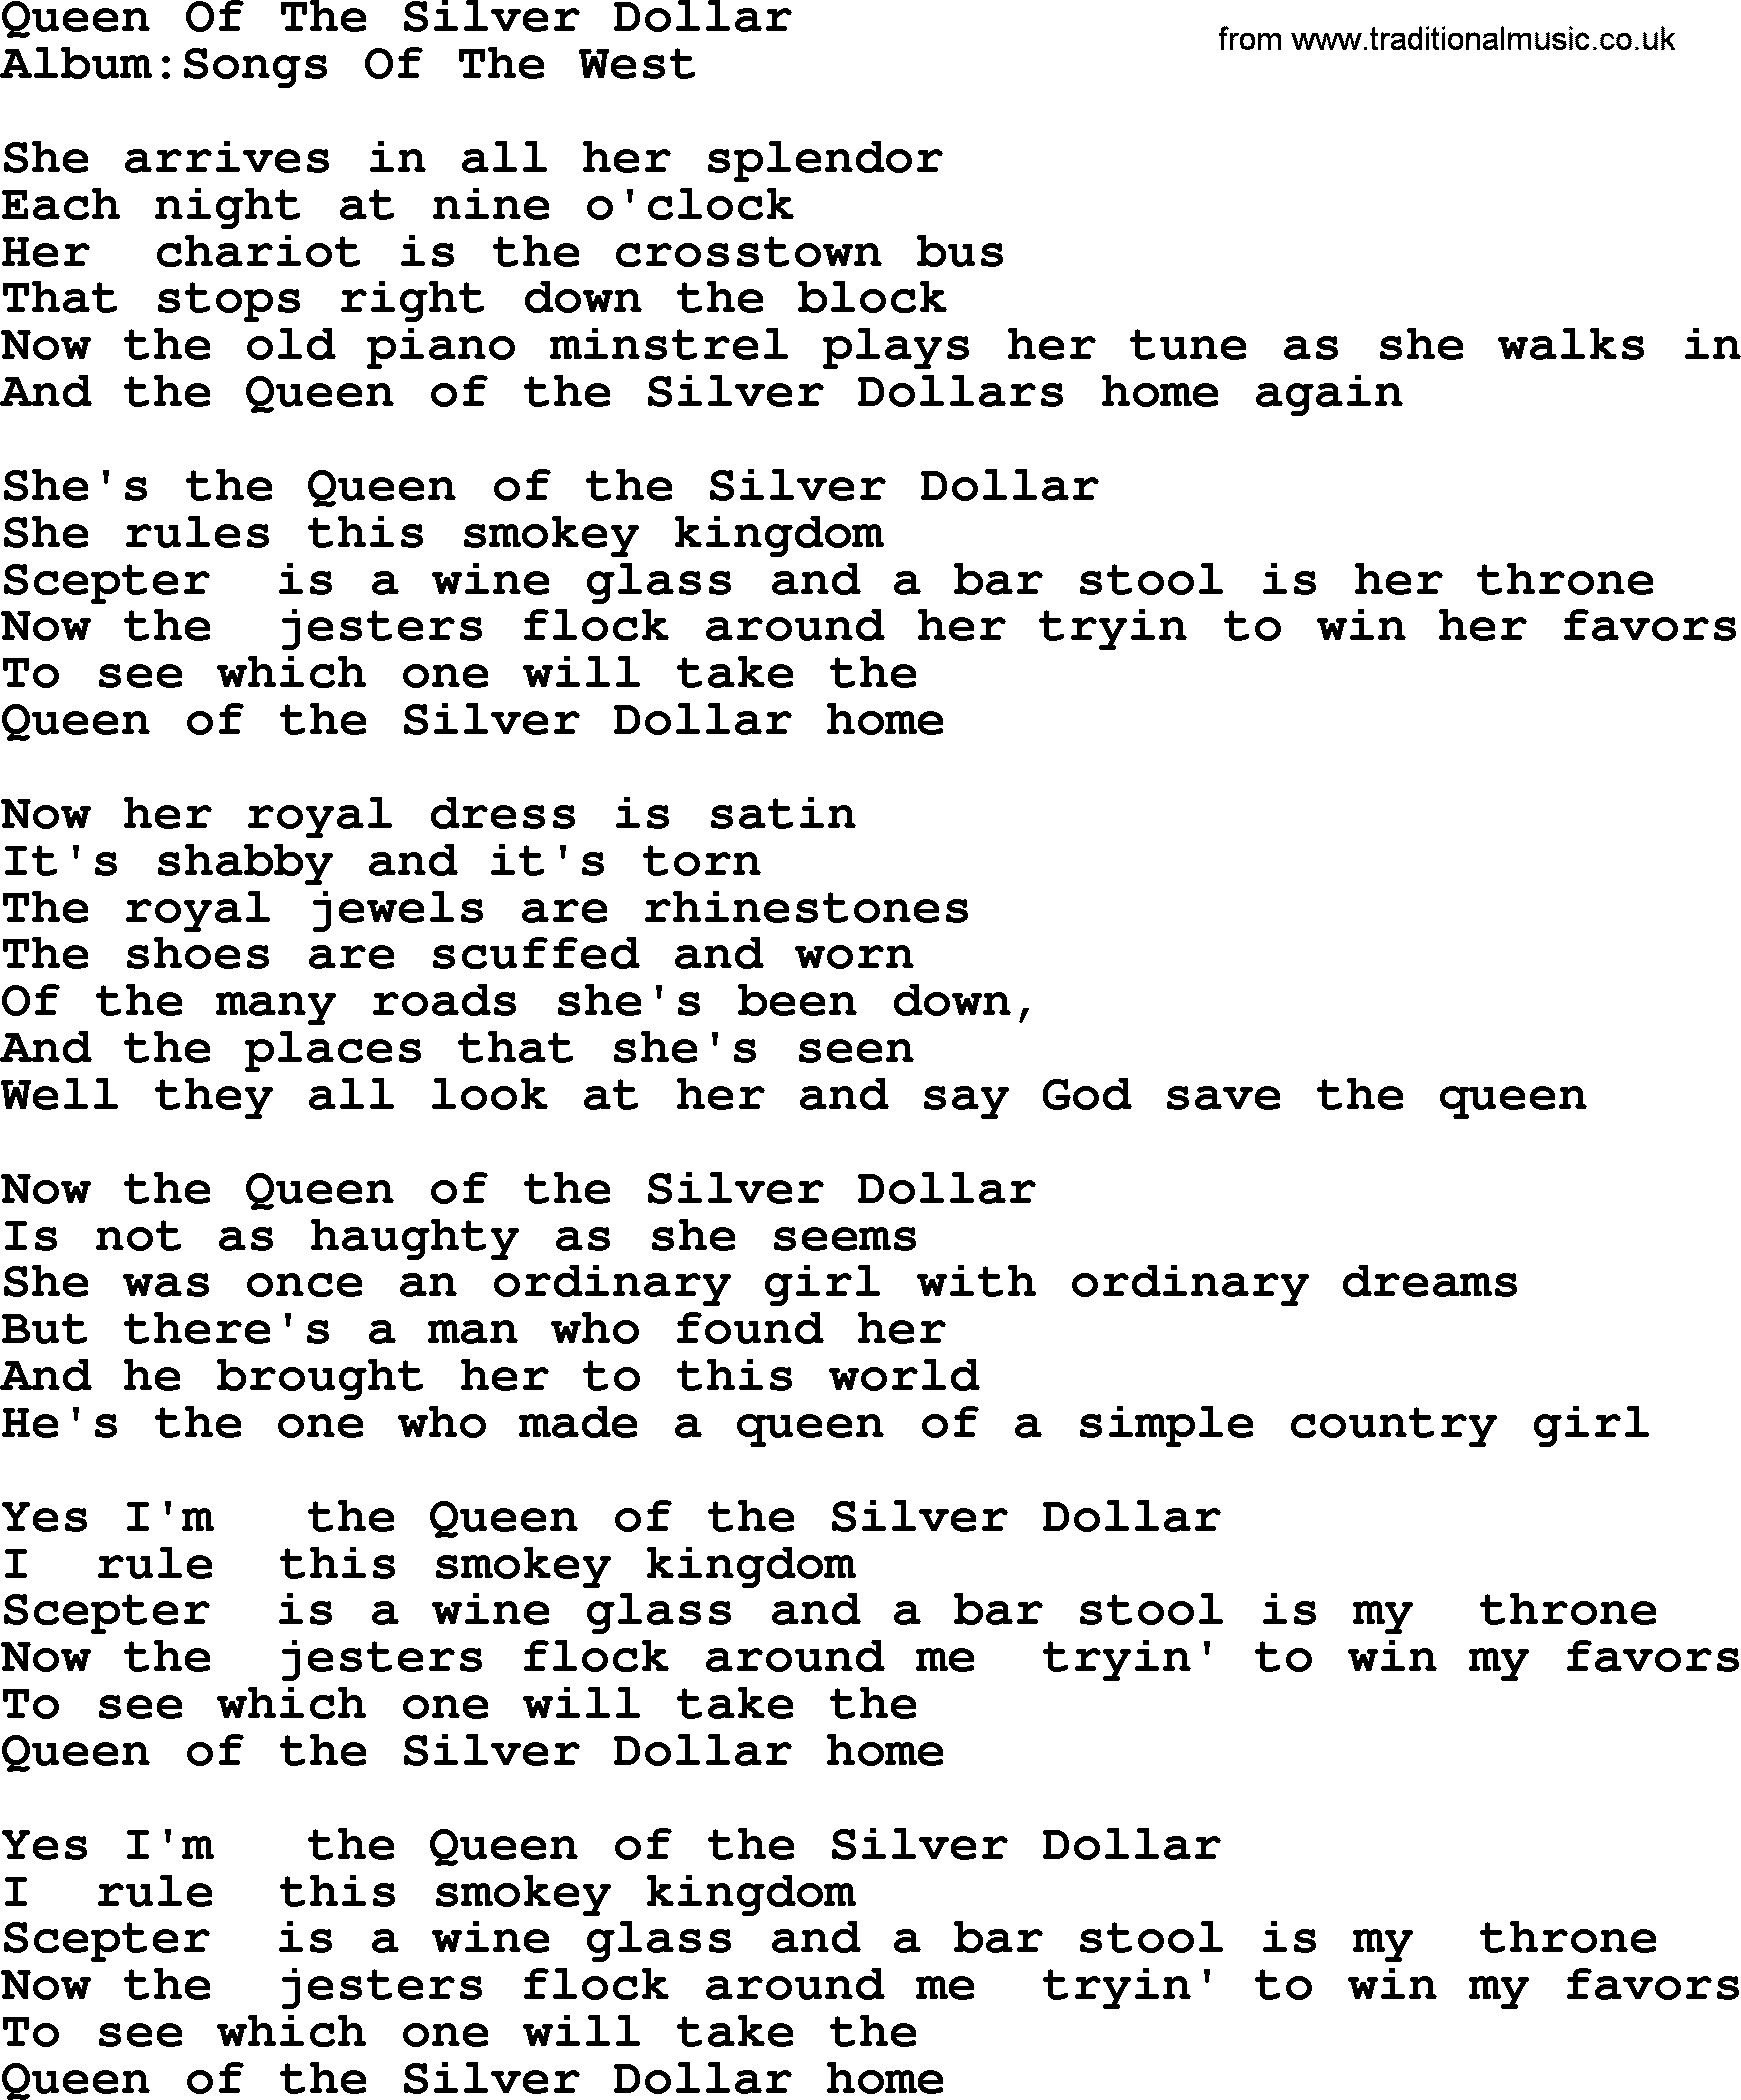 Emmylou Harris song: Queen Of The Silver Dollar, lyrics